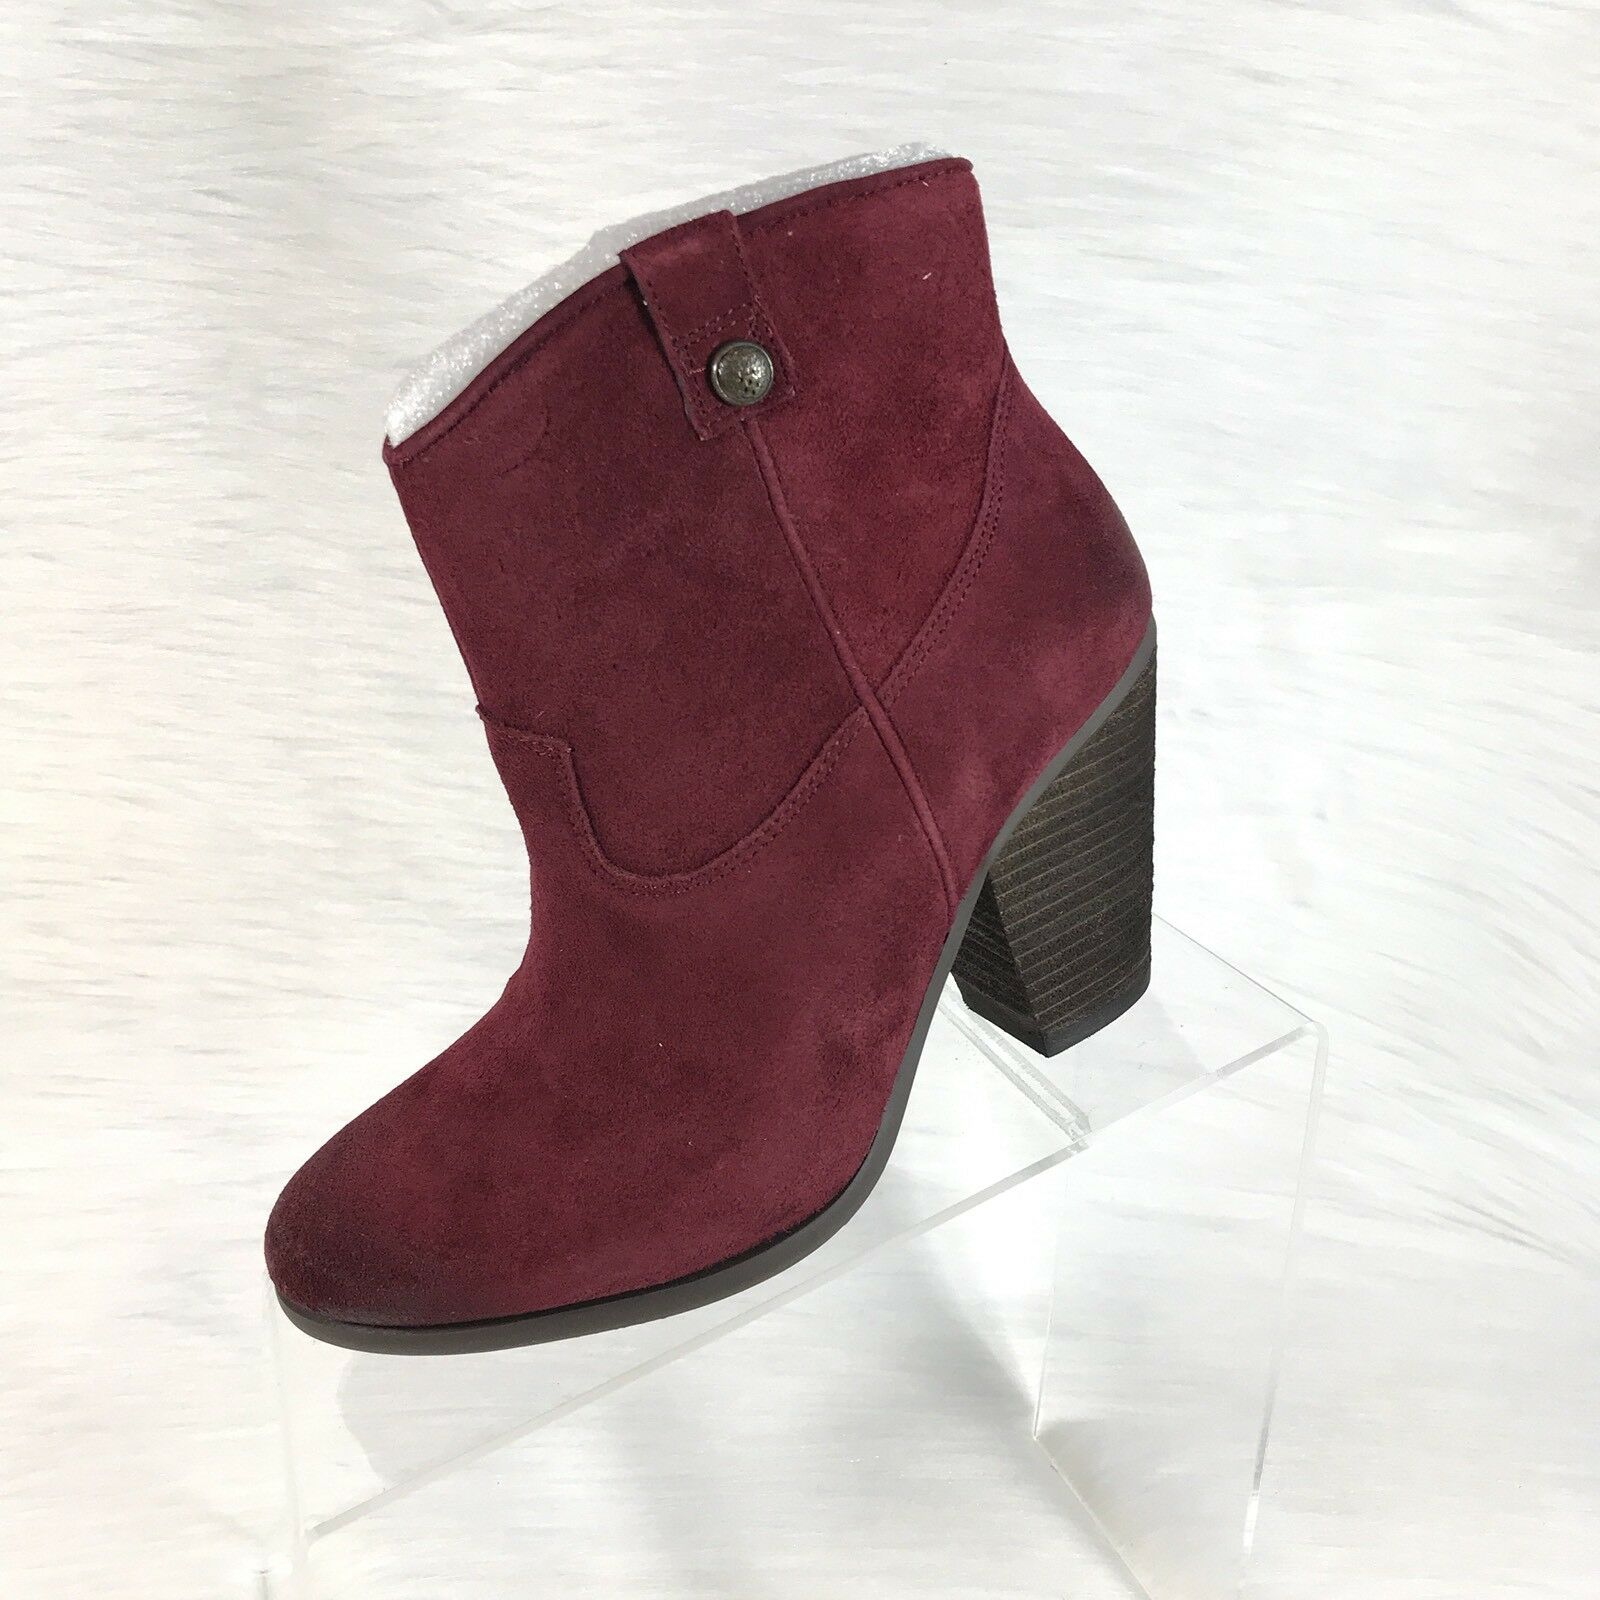 Vince Camuto Hammerton Ankle Stivali Western Burgundy Aged Suede Size 7 M NEW